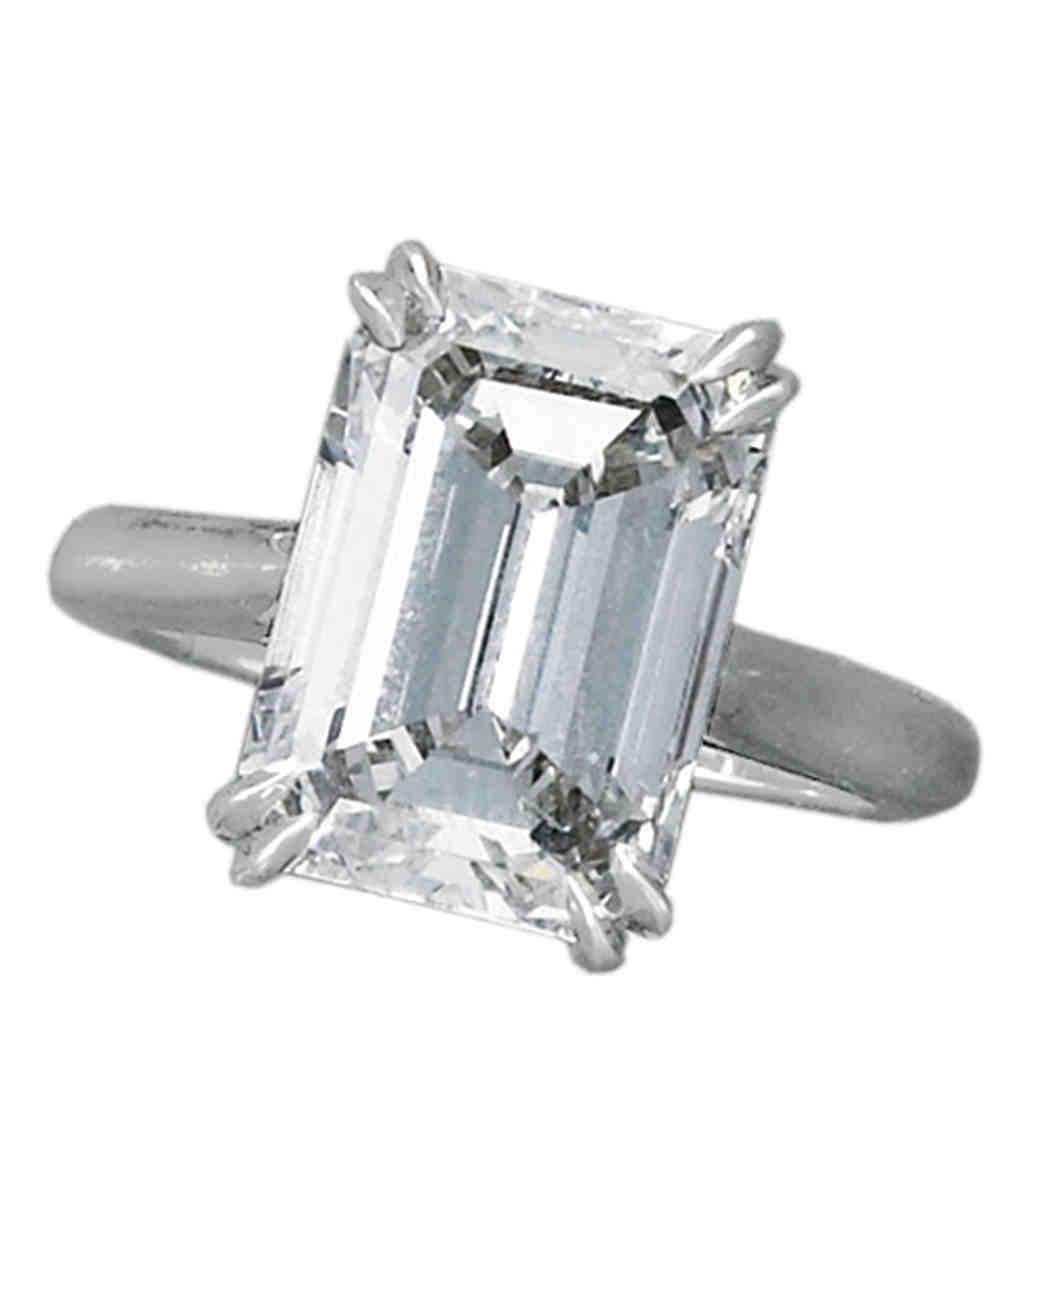 jewelers raymond engagement lee wedding cut rings of our elegant favorite rectangular cushion rectangle